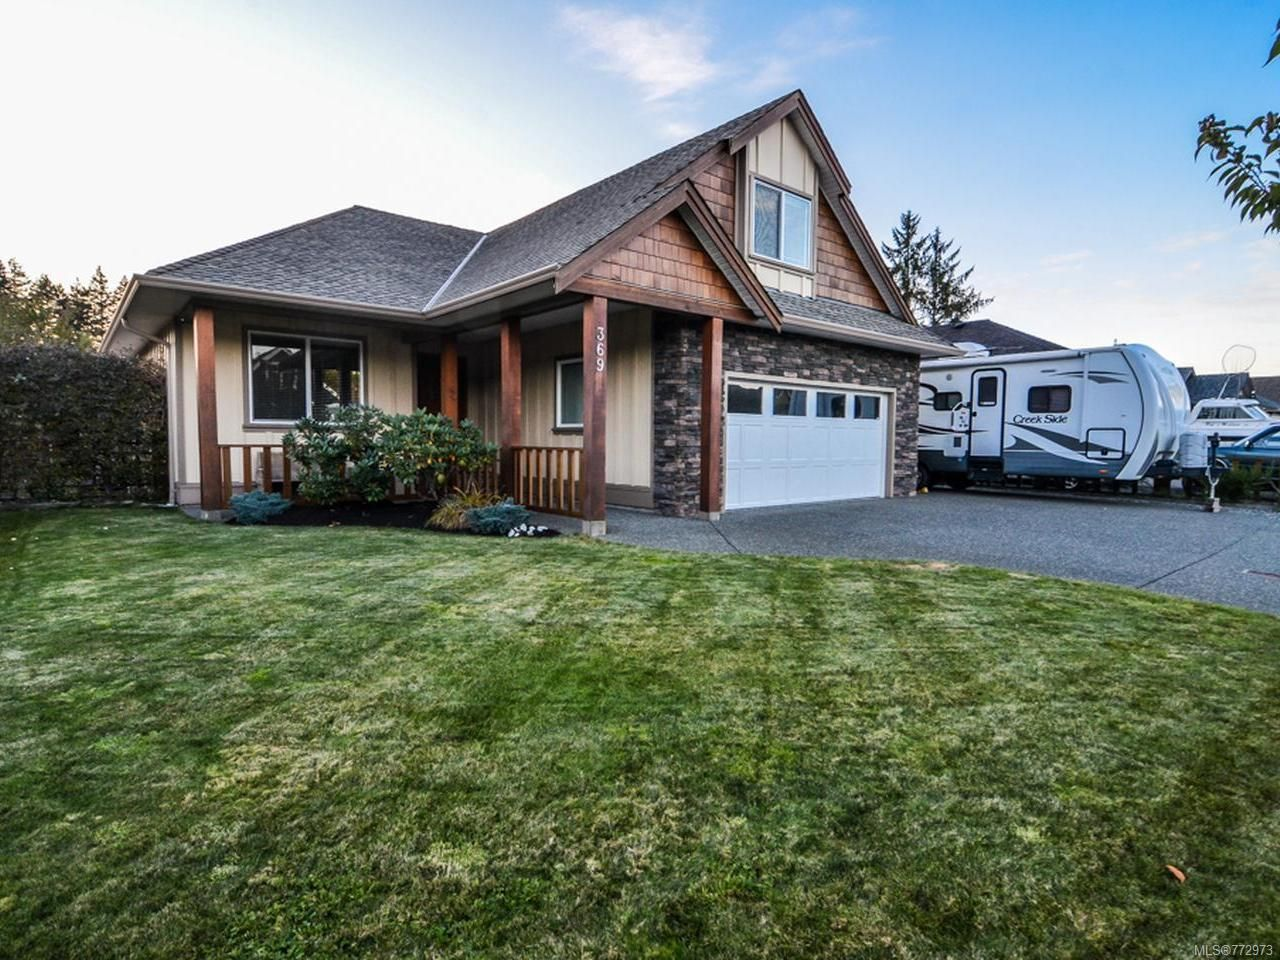 Main Photo: 369 SERENITY DRIVE in CAMPBELL RIVER: CR Campbell River West House for sale (Campbell River)  : MLS®# 772973